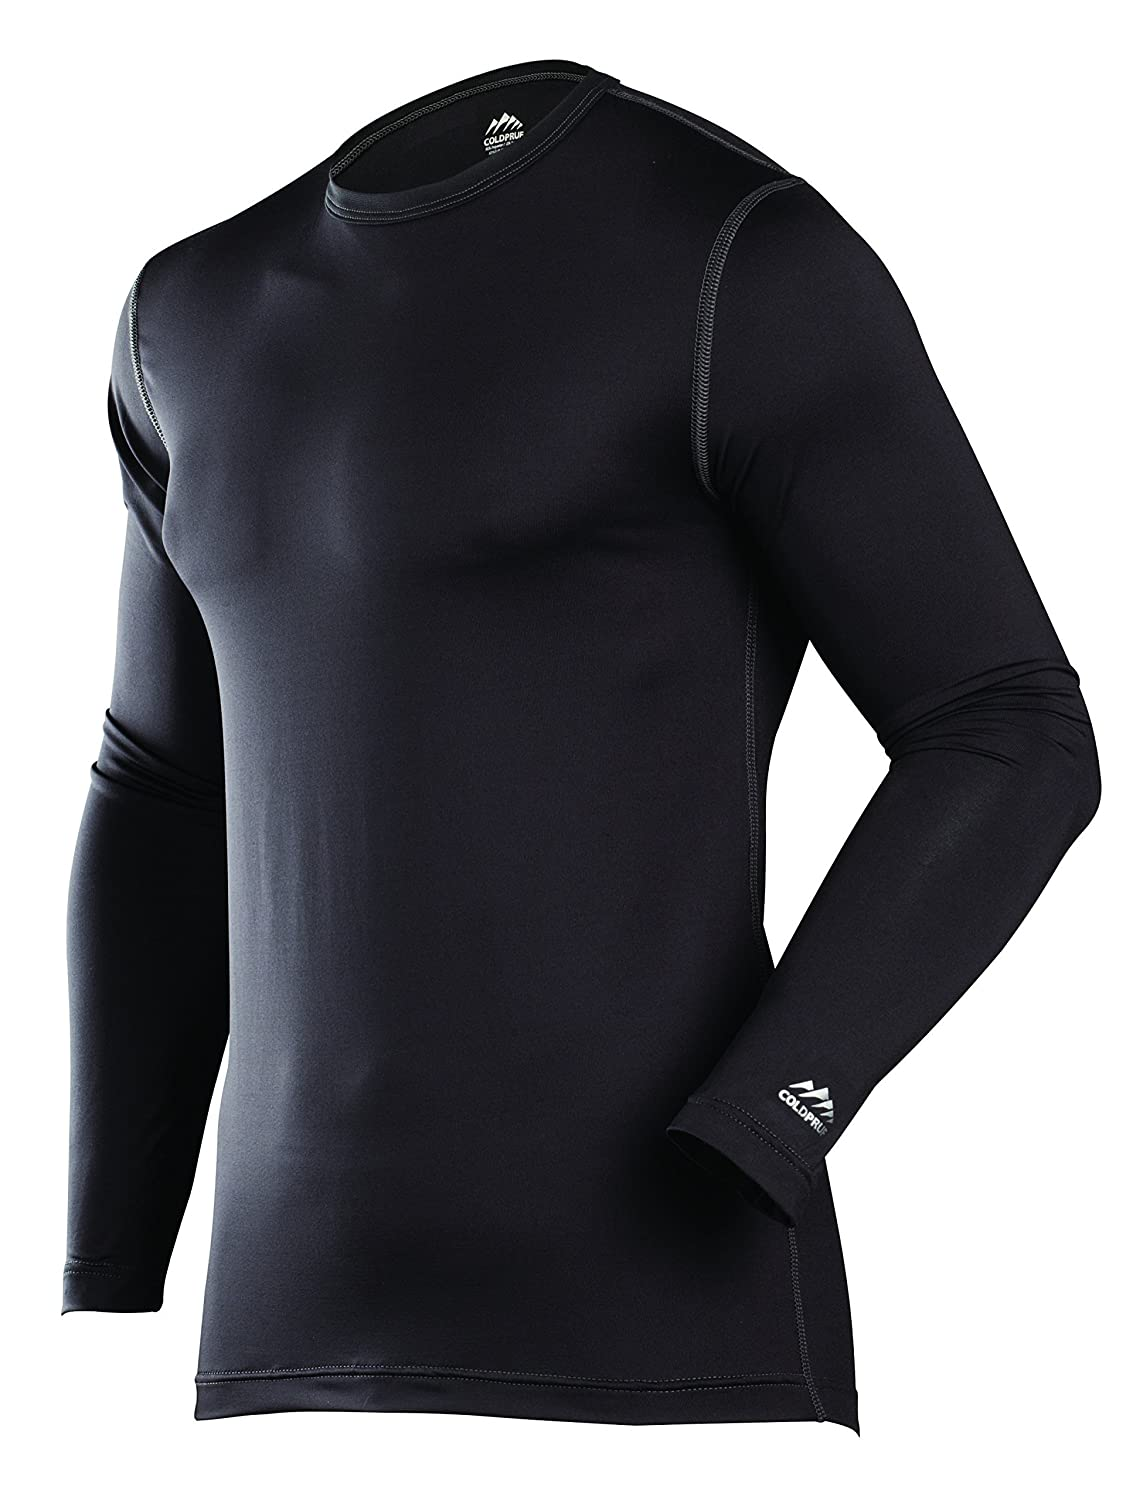 ColdPruf Mens Premium Performance Single Layer Long Sleeve Crew Neck Top ColdPruf Baselayer